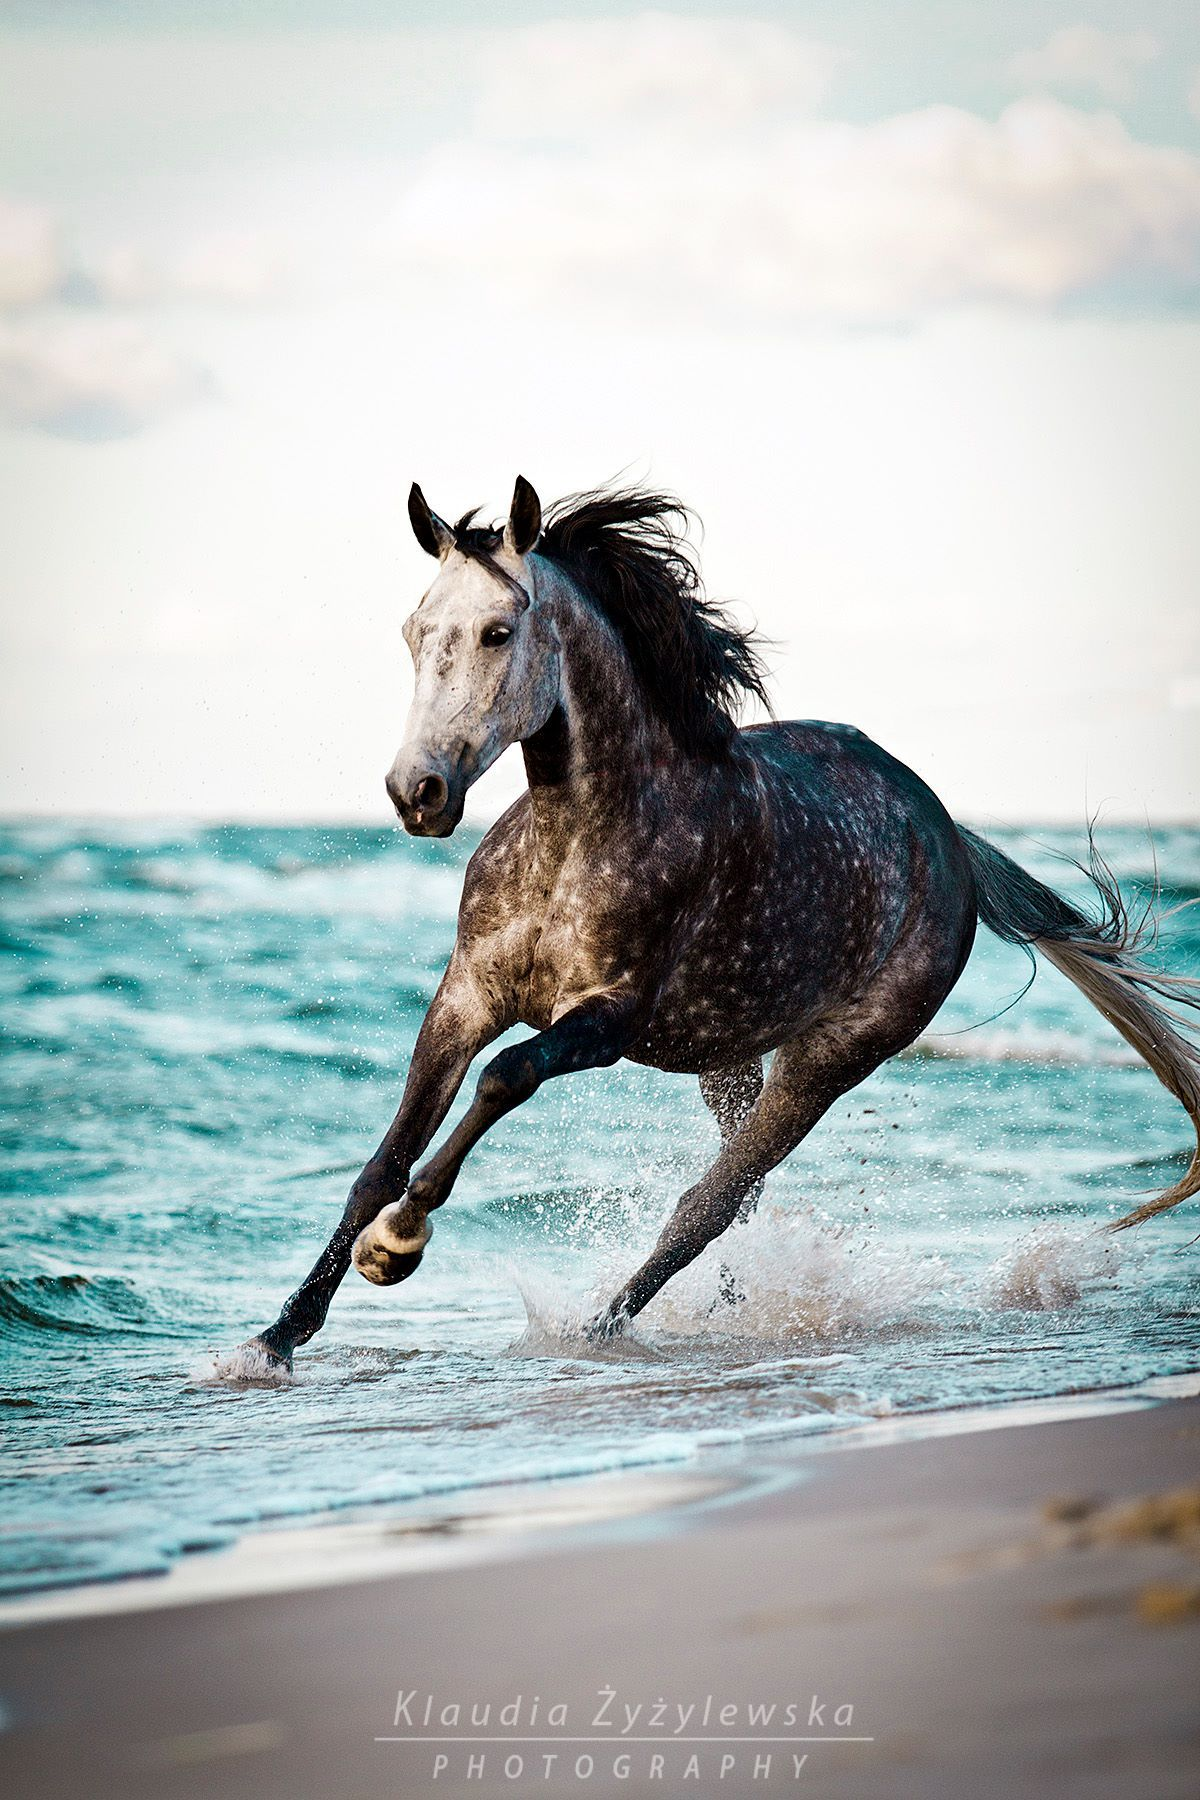 This horse and photo are Stunning colours